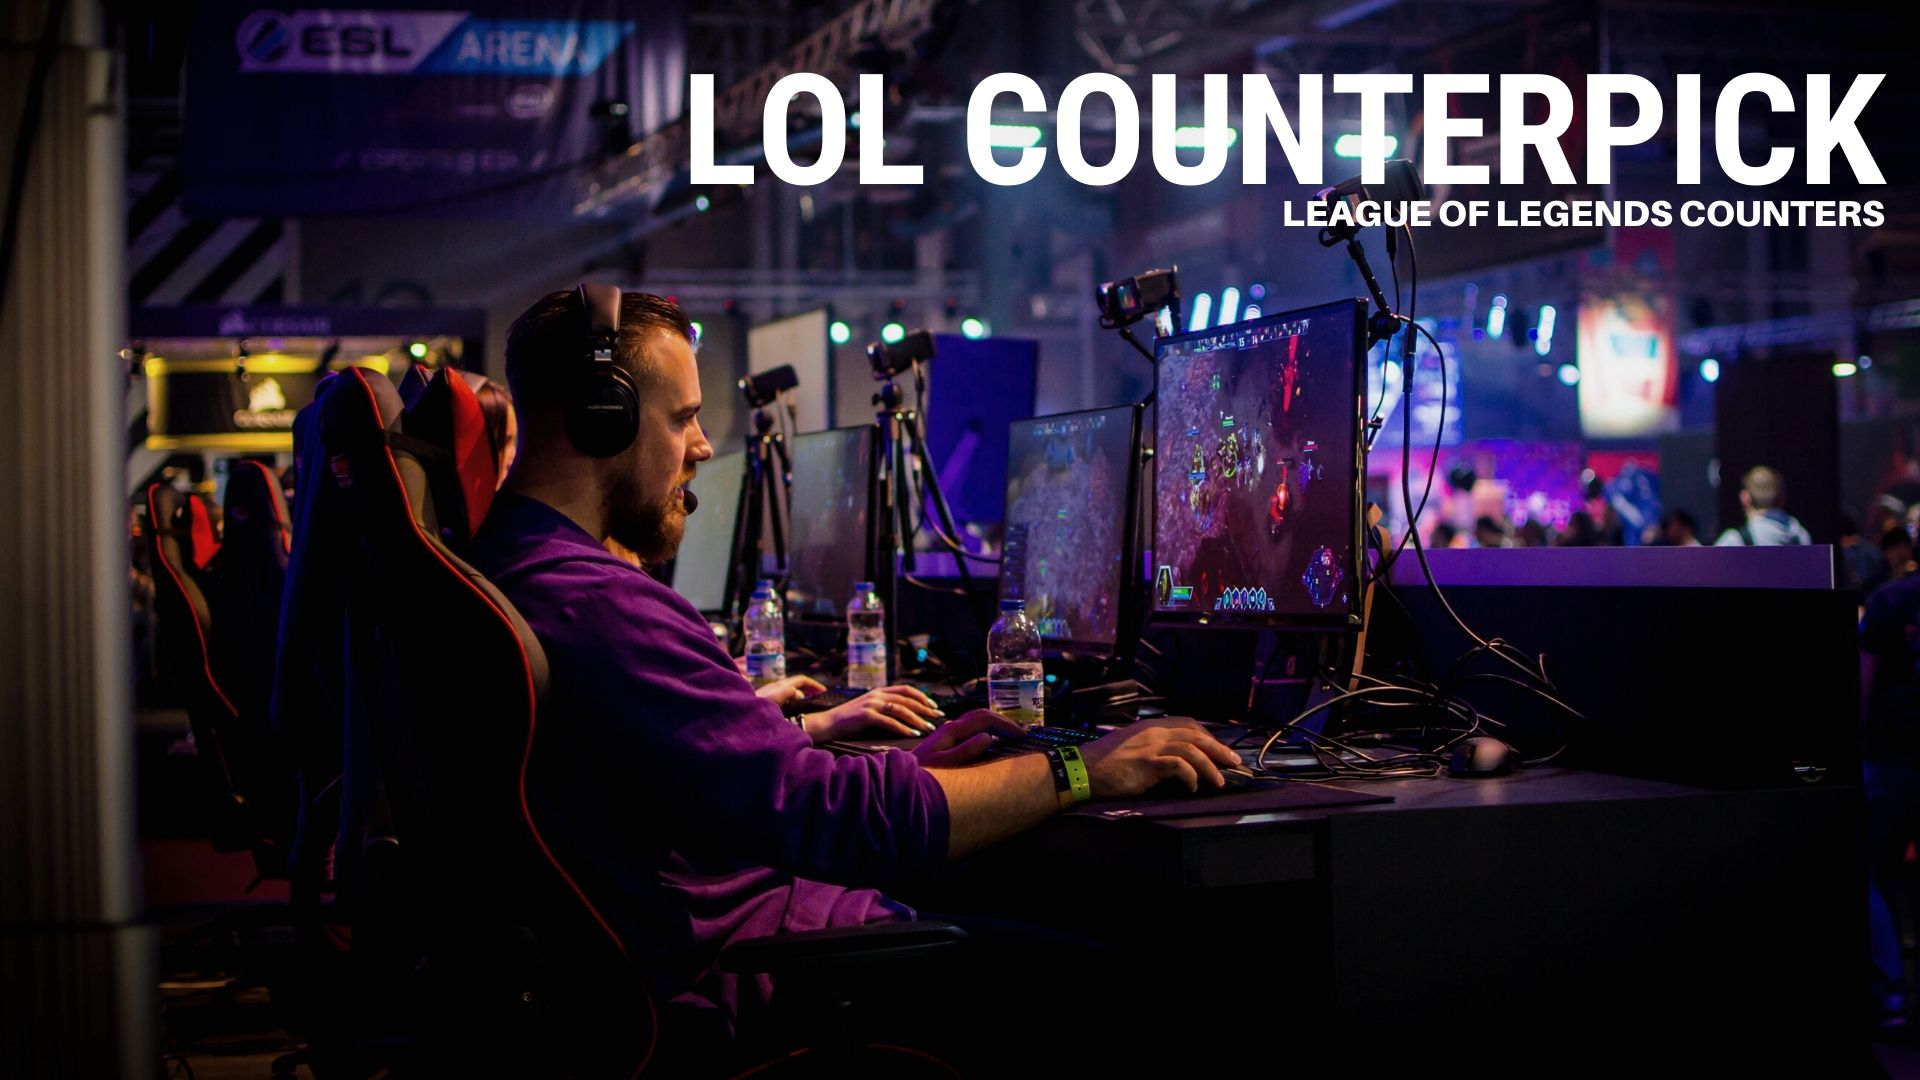 Lol Counterpick League Of Legends Counters